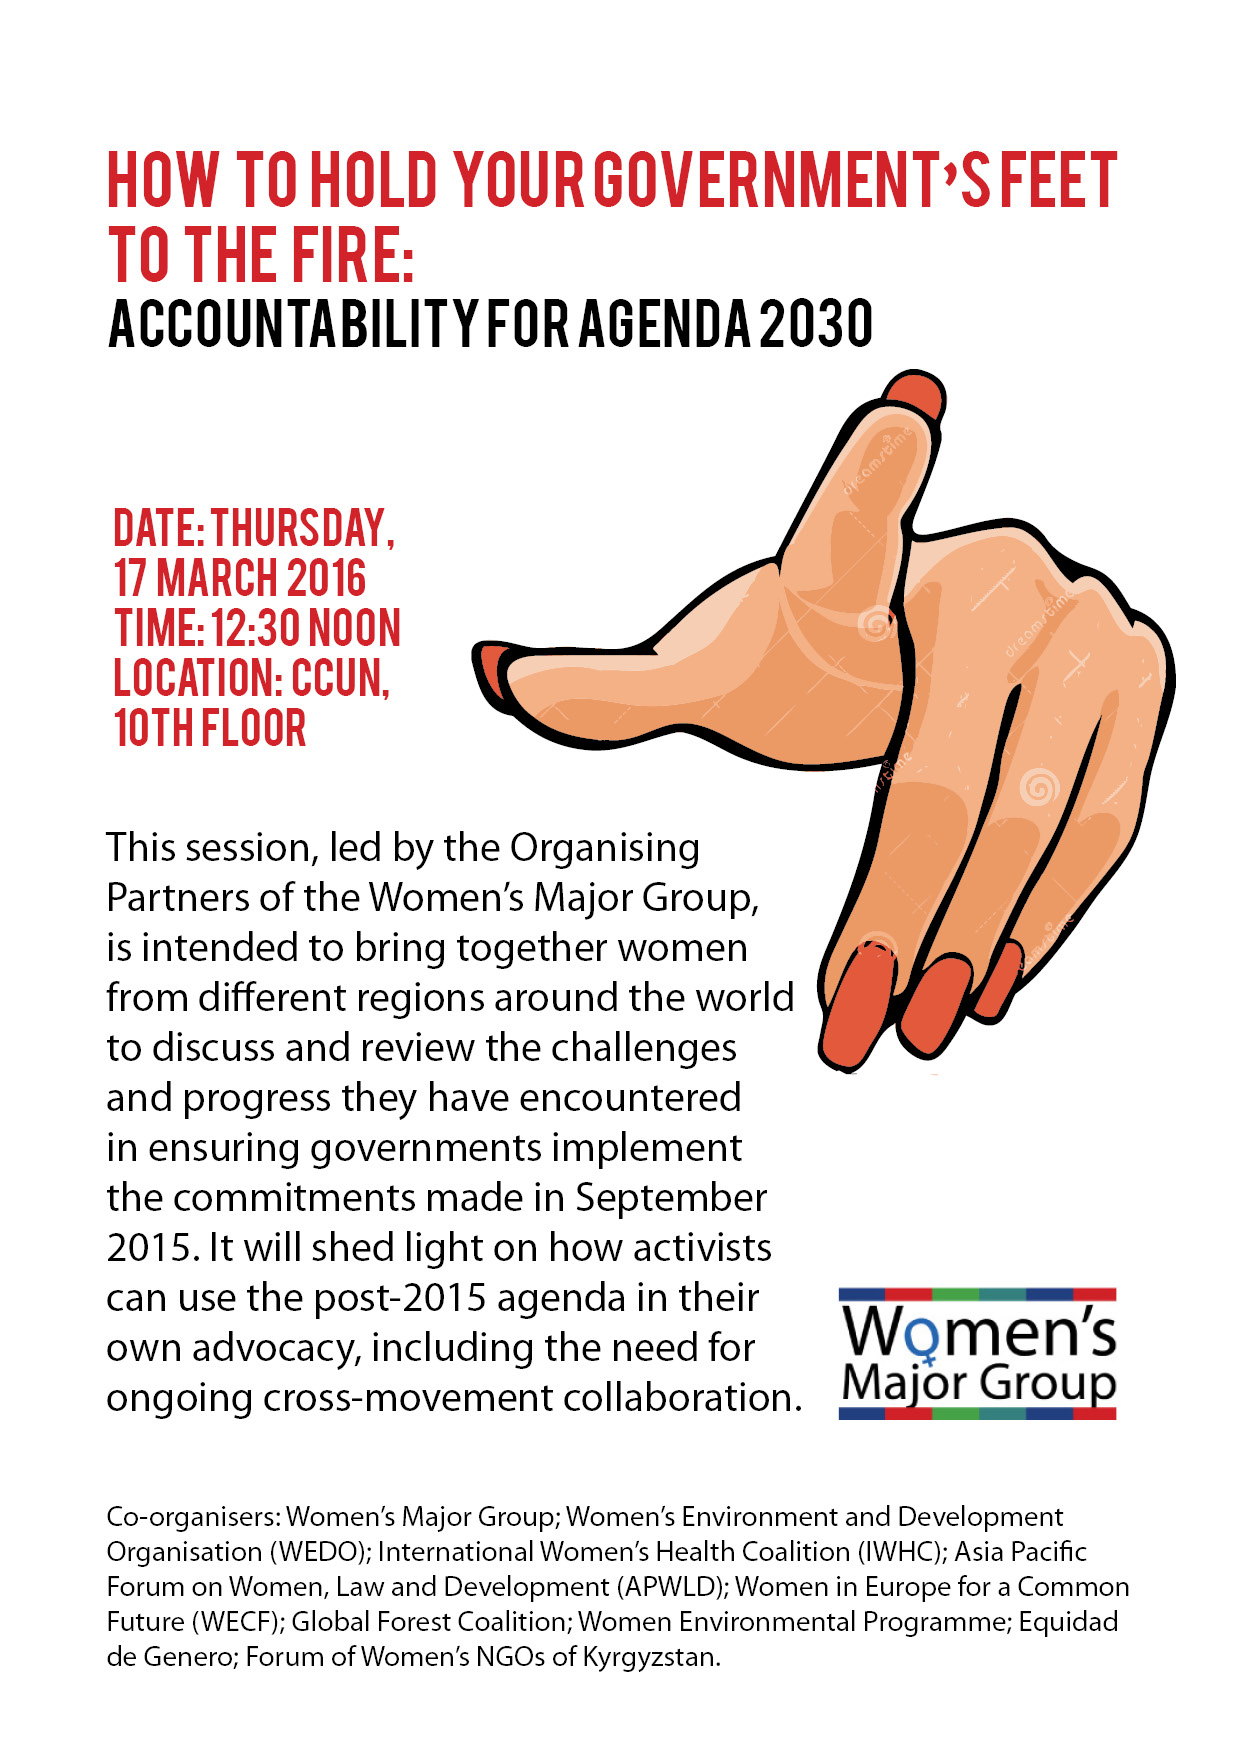 Agenda_2030_event_accountability